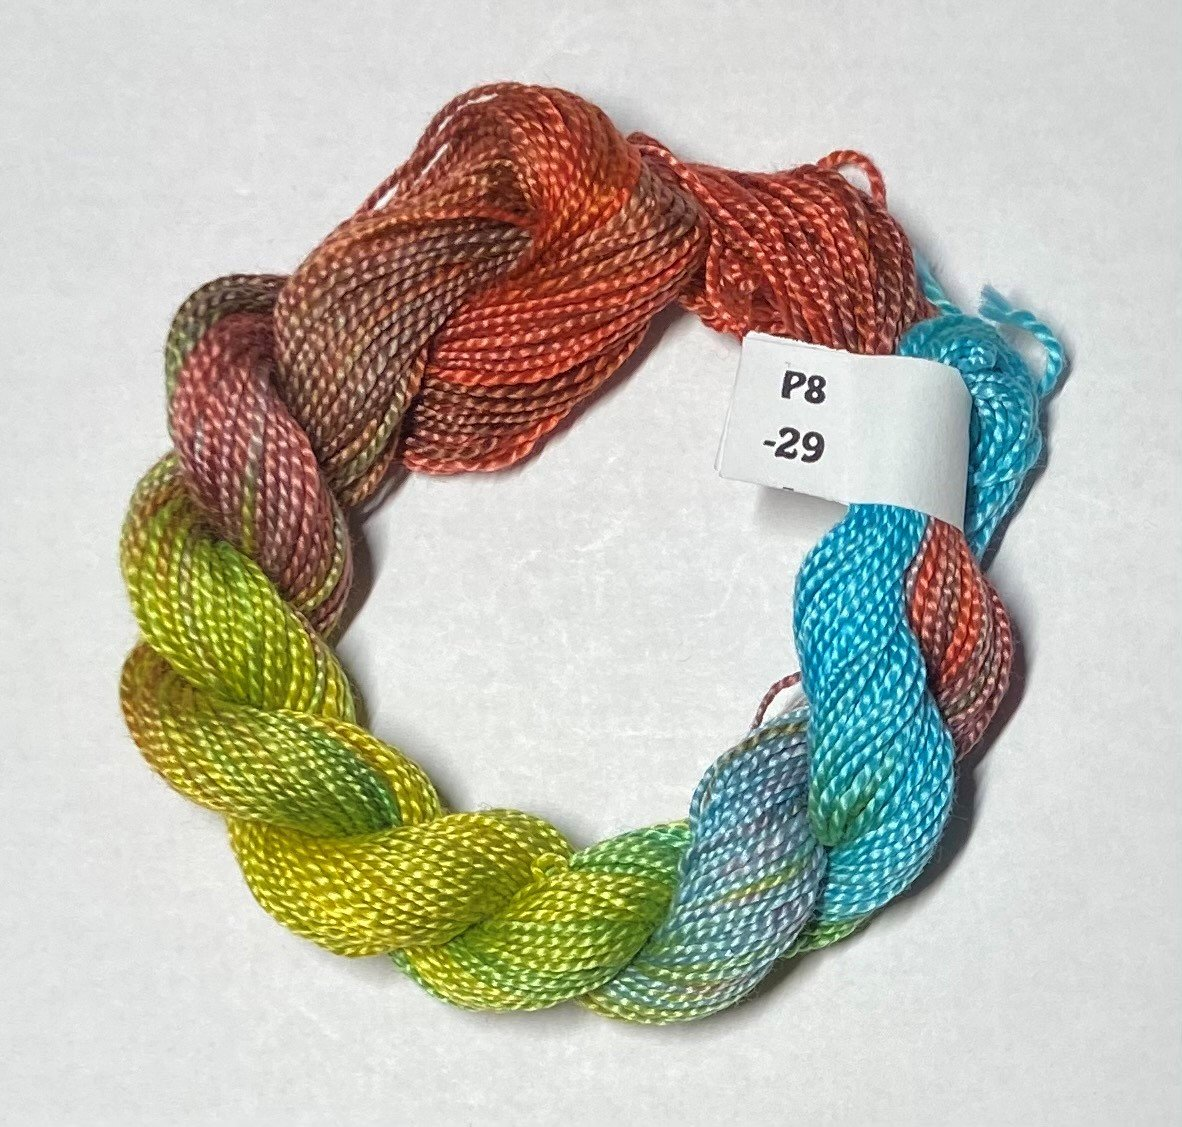 #8 Perle Cotton Rust, Green, Turquoise